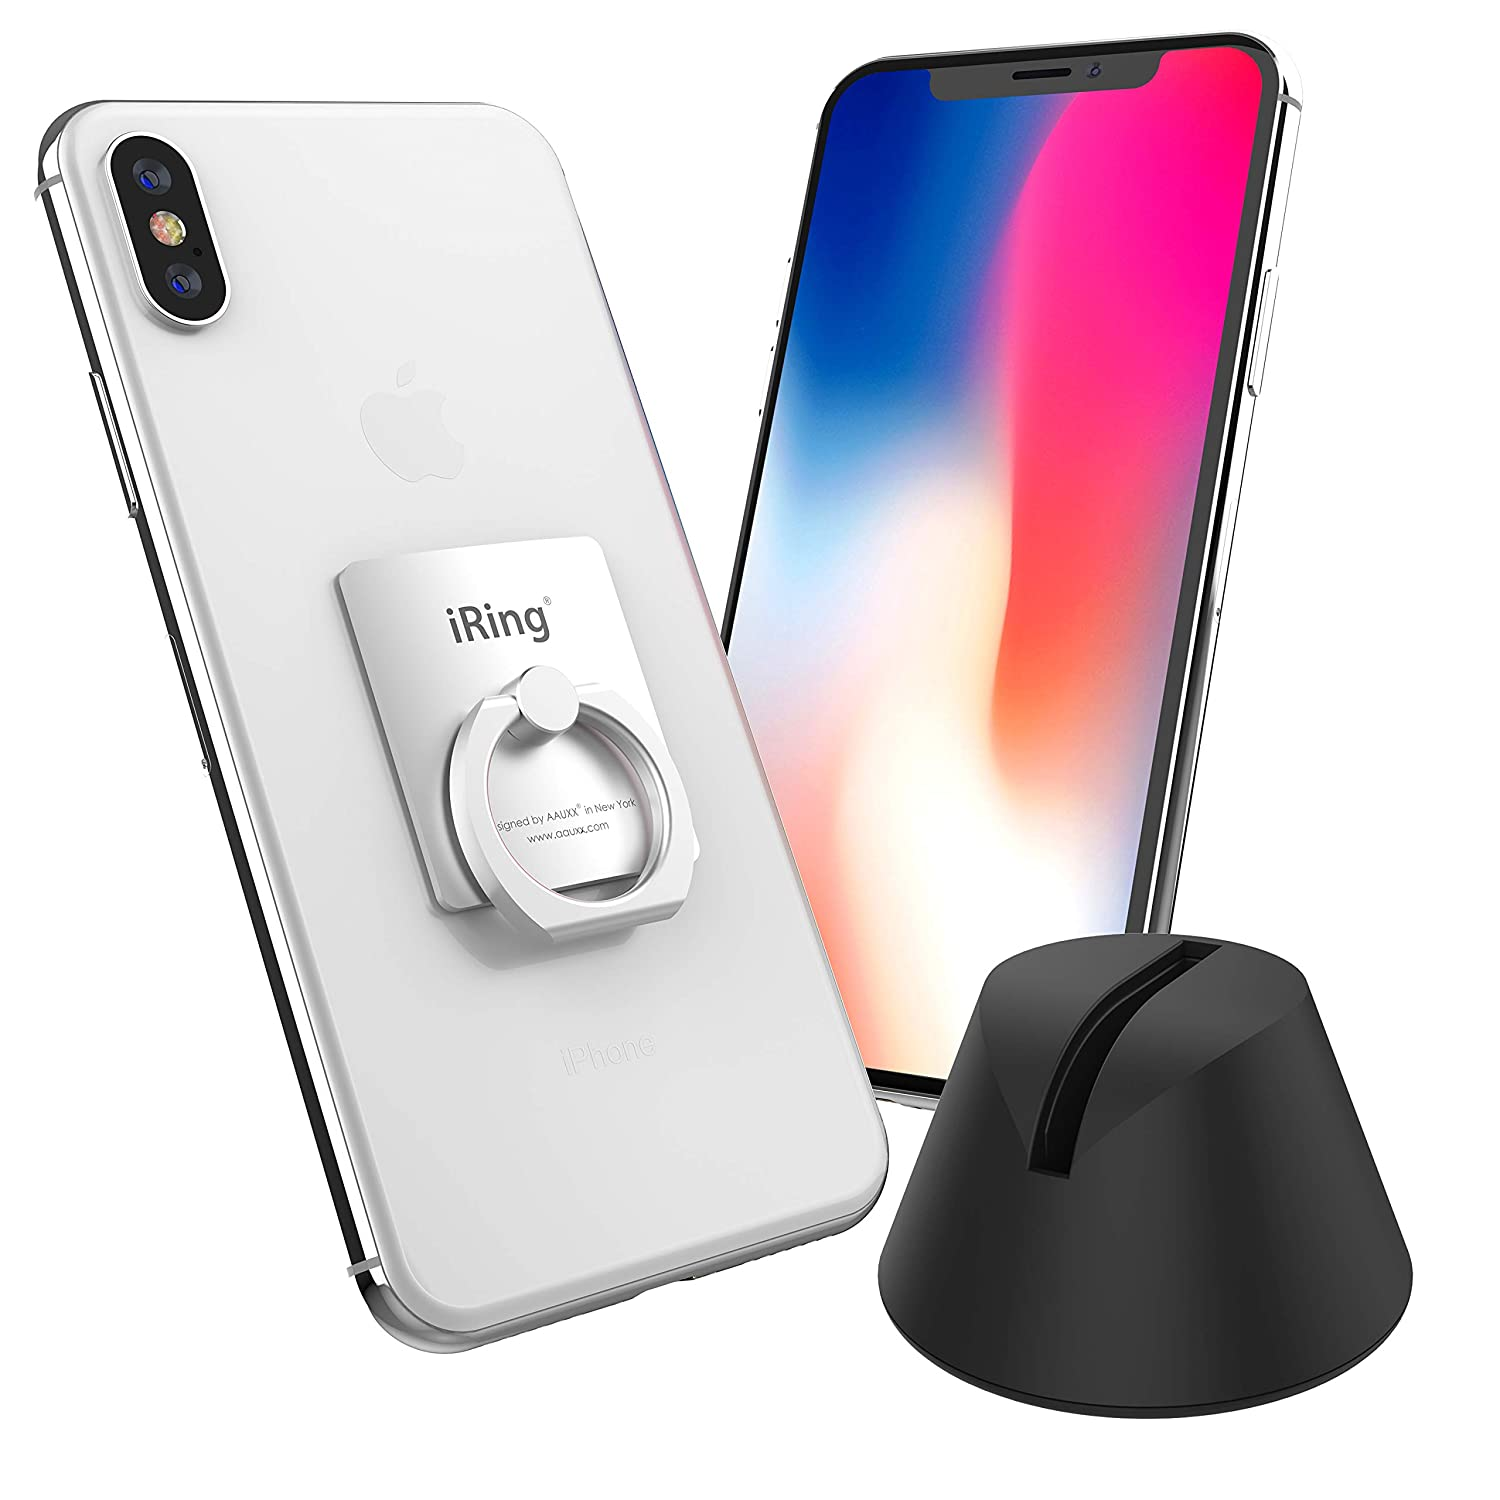 iPhone 8//8 Plus Cell Phone Cradles Phone Ring Holder Accessory for iPhone Xs Other Android Smartphones and Tablets. Samsung Xs MAX Mounts /& Stands AAUXX iRing with Dock